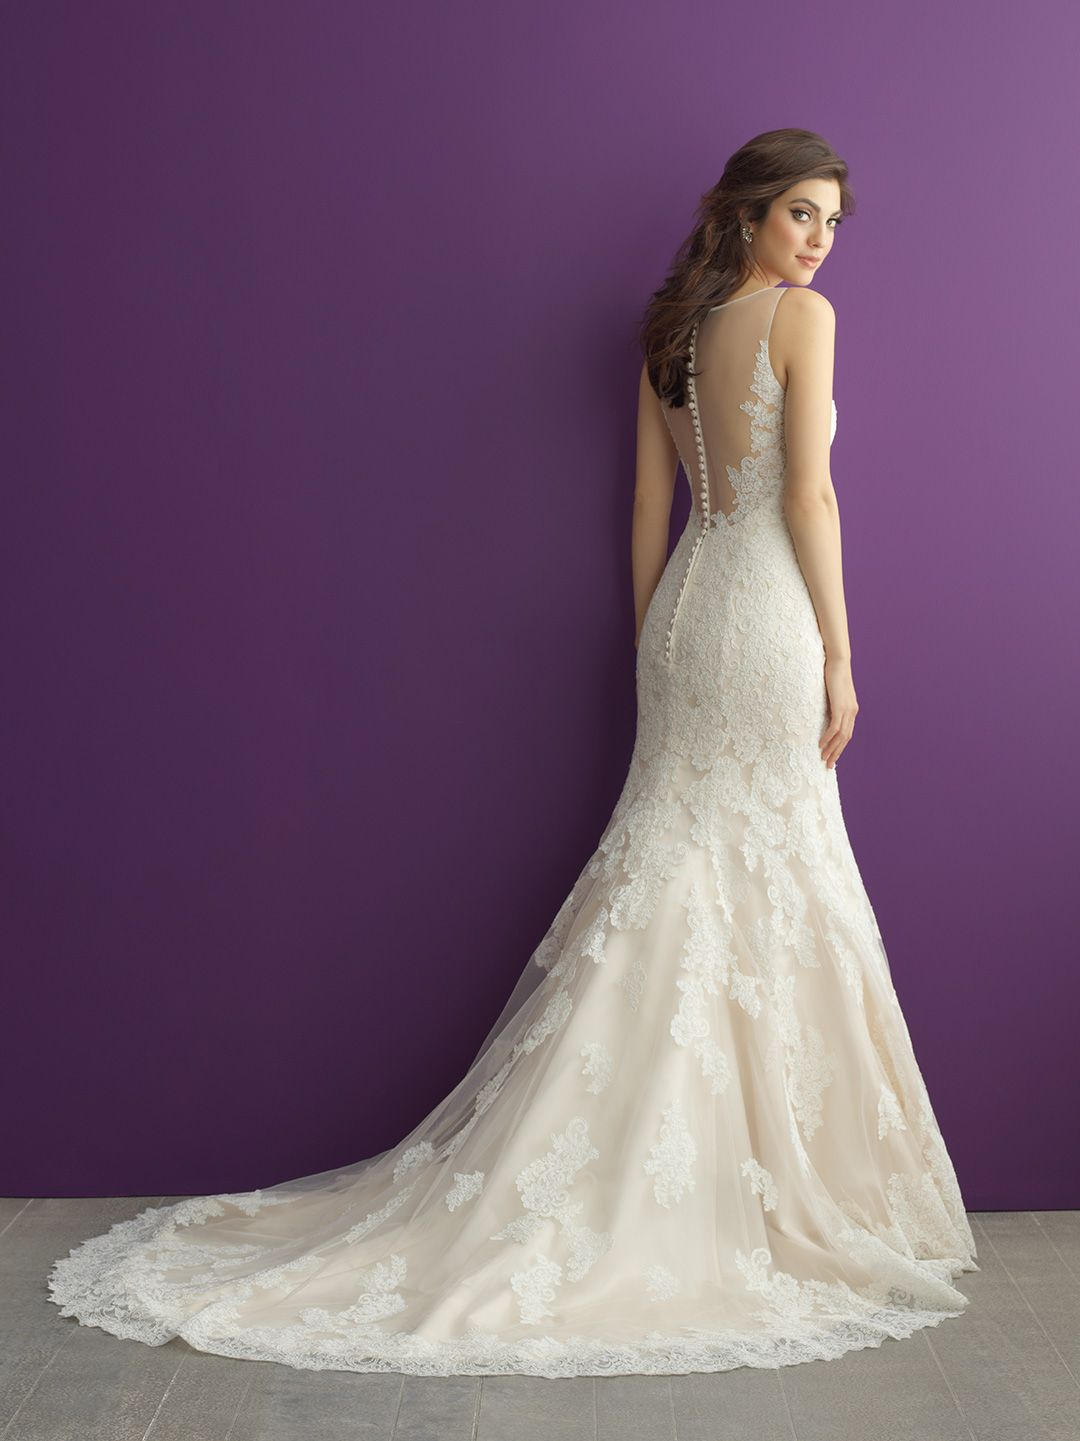 Allure Romance Wedding Dress Style 2963. An understated lace ...